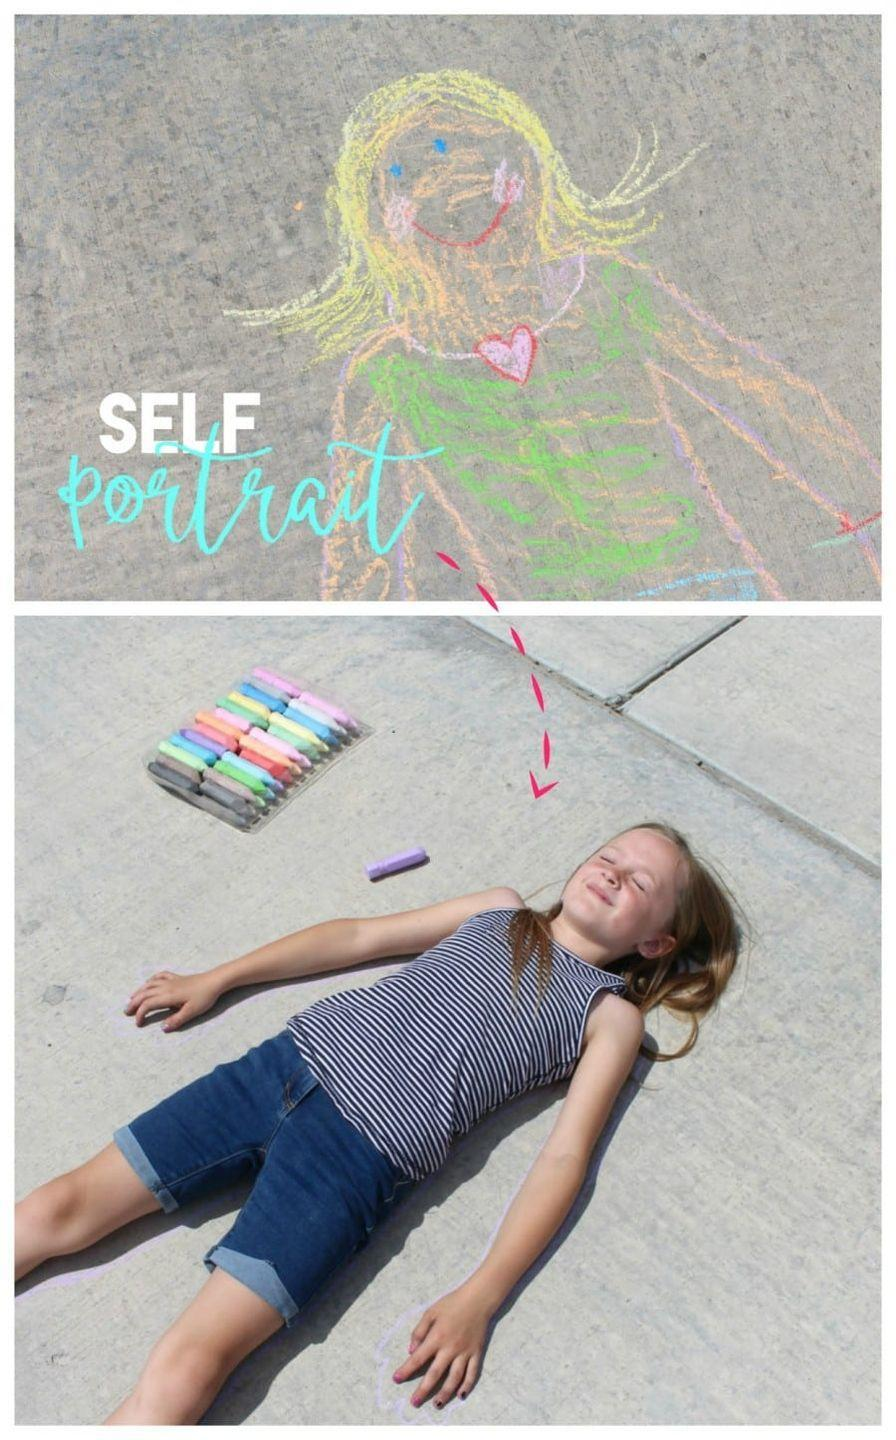 """<p>Try a chalk art project that doubles as a form of self expression: Have someone lie down on the sidewalk while you trace their silhouette with chalk. Then let the traced person decorate so it looks like them. Add clothes, jewelry, accessories, and more.</p><p><em><a href=""""https://www.agirlandagluegun.com/2016/07/36444.html"""" rel=""""nofollow noopener"""" target=""""_blank"""" data-ylk=""""slk:Get the tutorial from a Girl and a Glue Gun »"""" class=""""link rapid-noclick-resp"""">Get the tutorial from a Girl and a Glue Gun »</a></em></p>"""